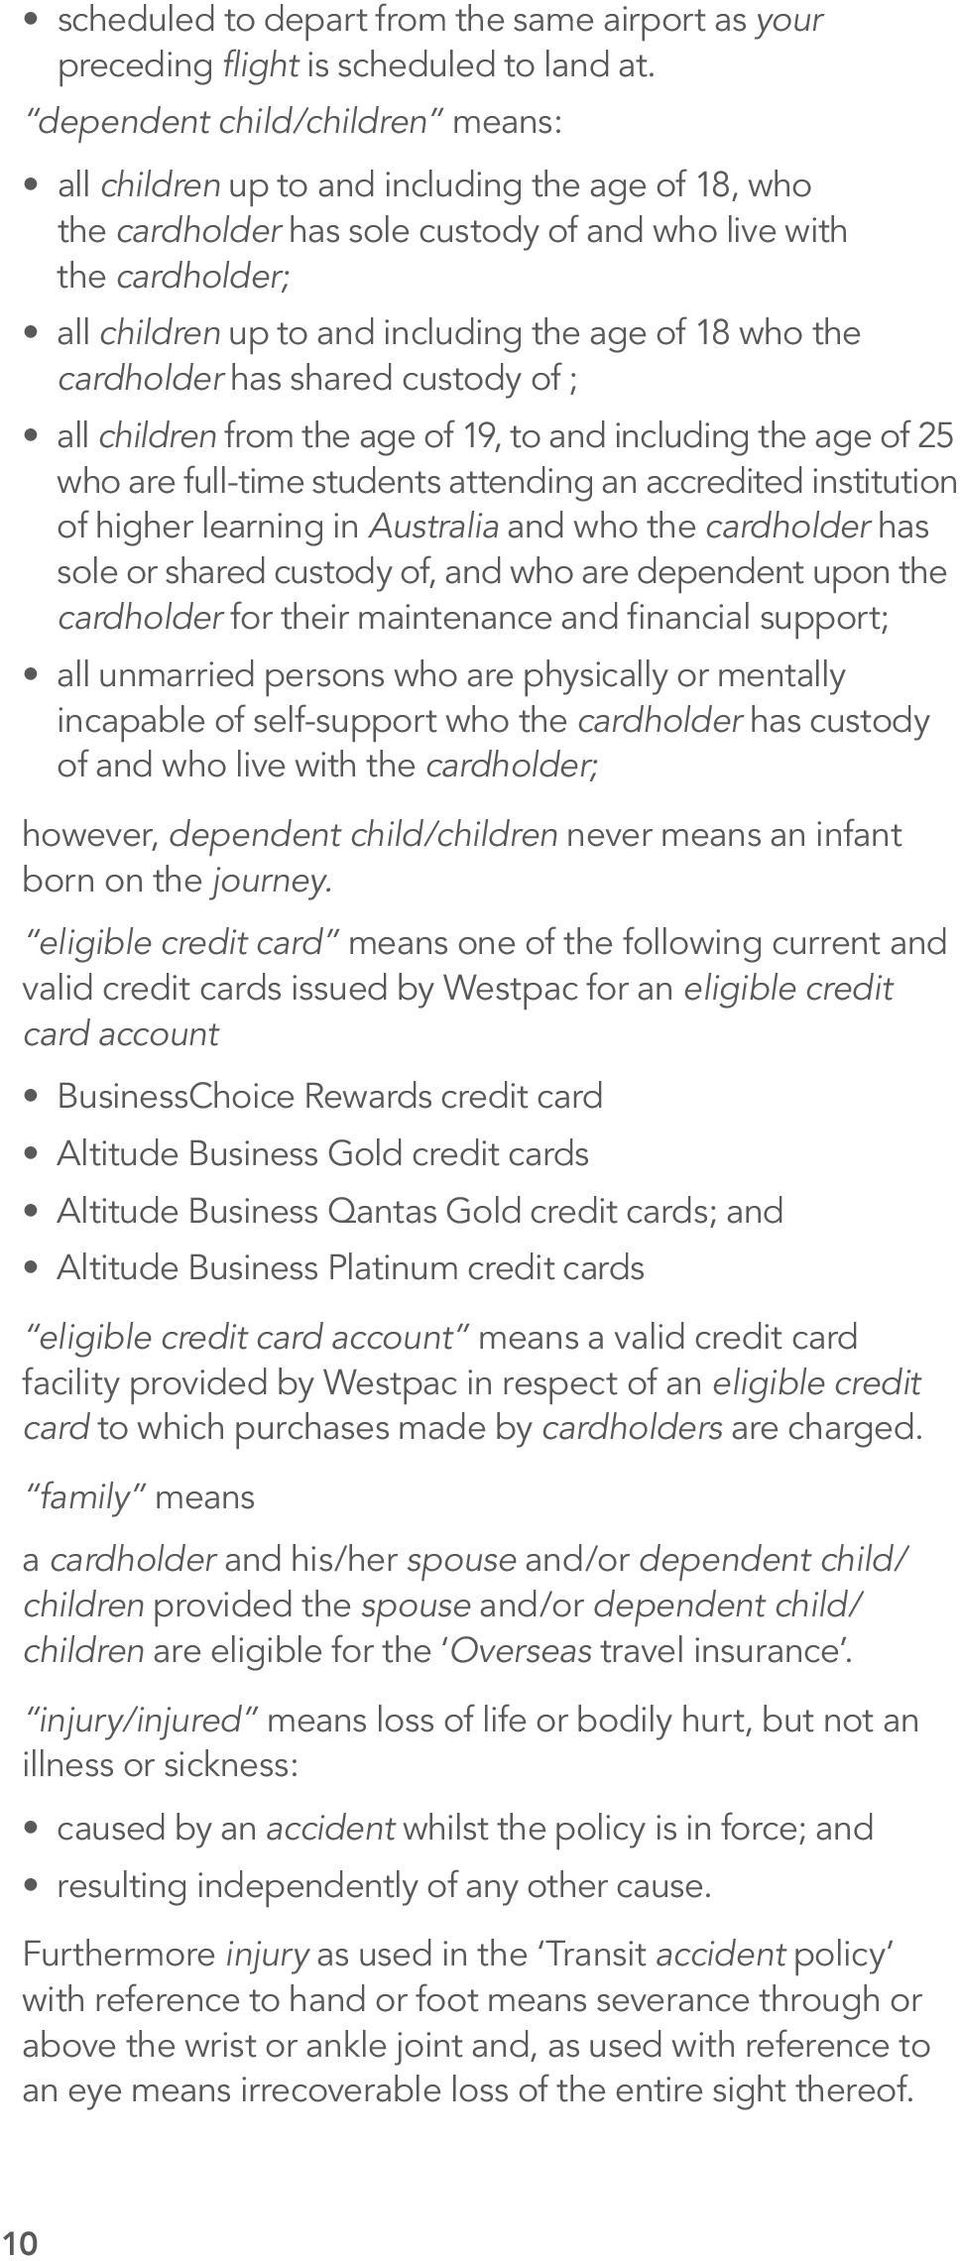 who the cardholder has shared custody of ; all children from the age of 19, to and including the age of 25 who are full-time students attending an accredited institution of higher learning in